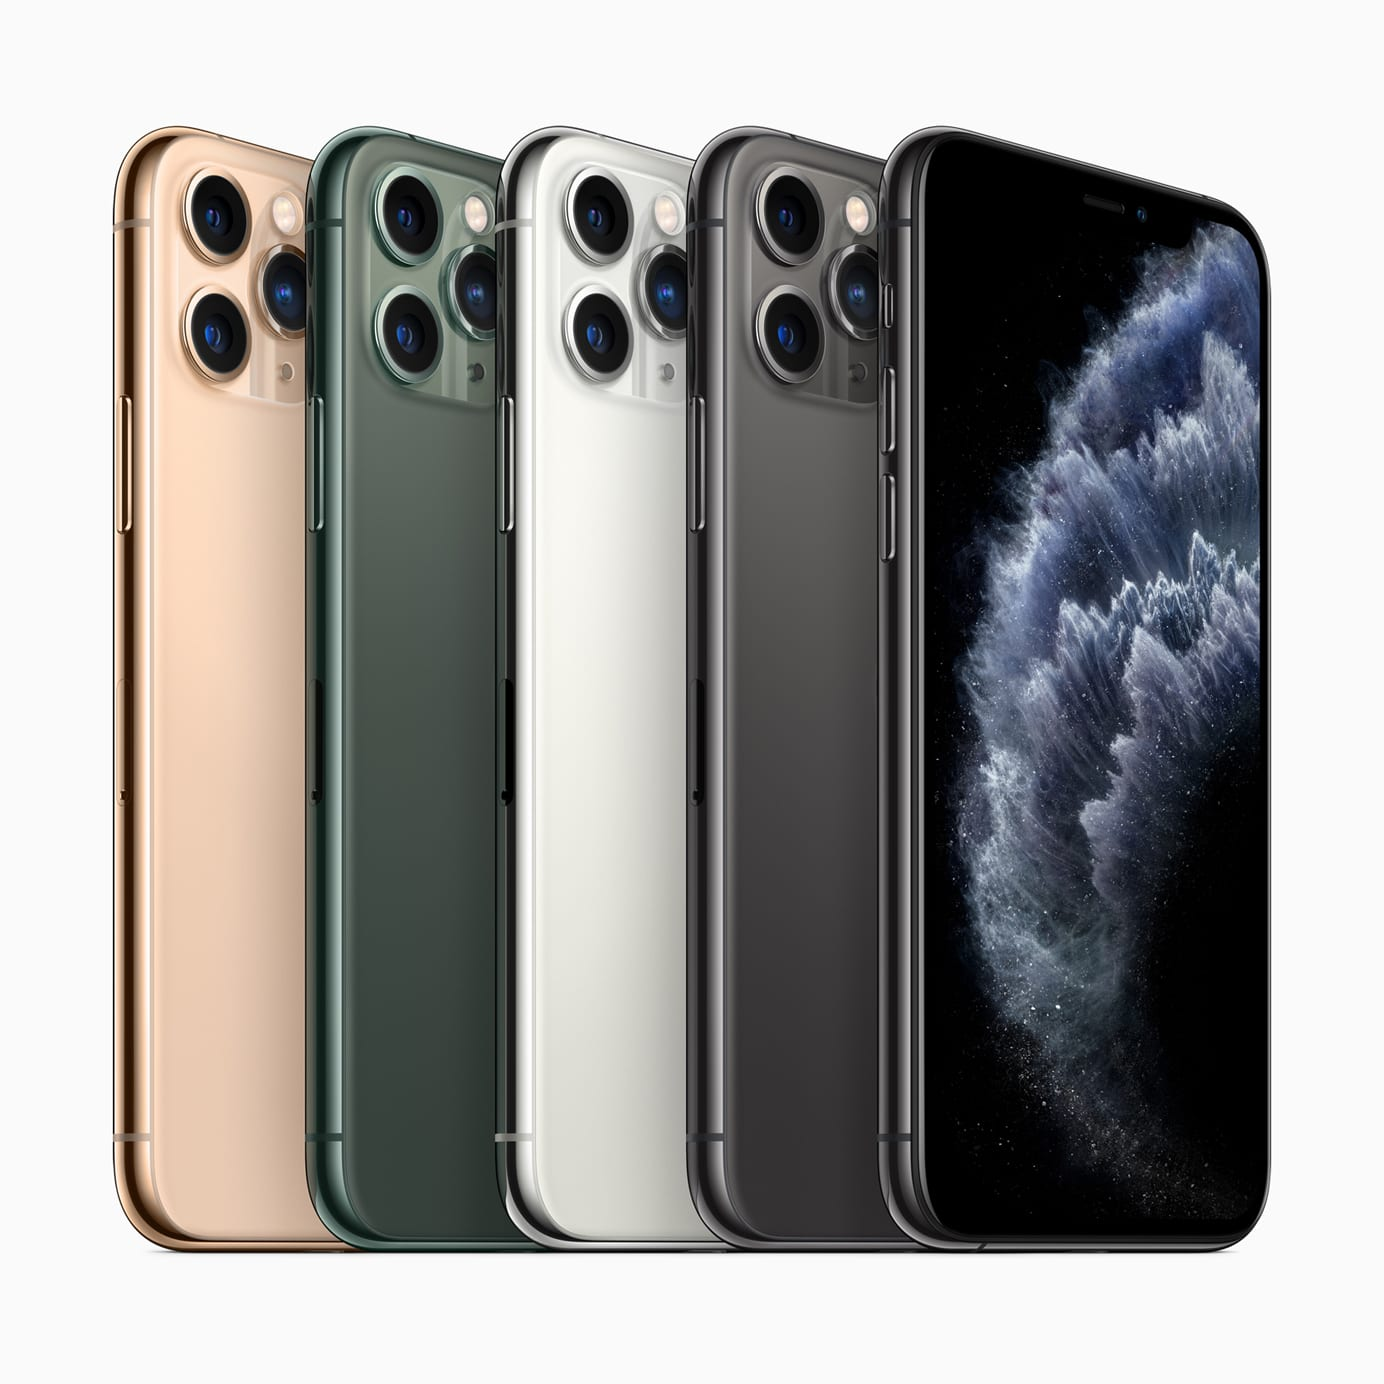 body 5 - iPhone 11 v Číne exceluje